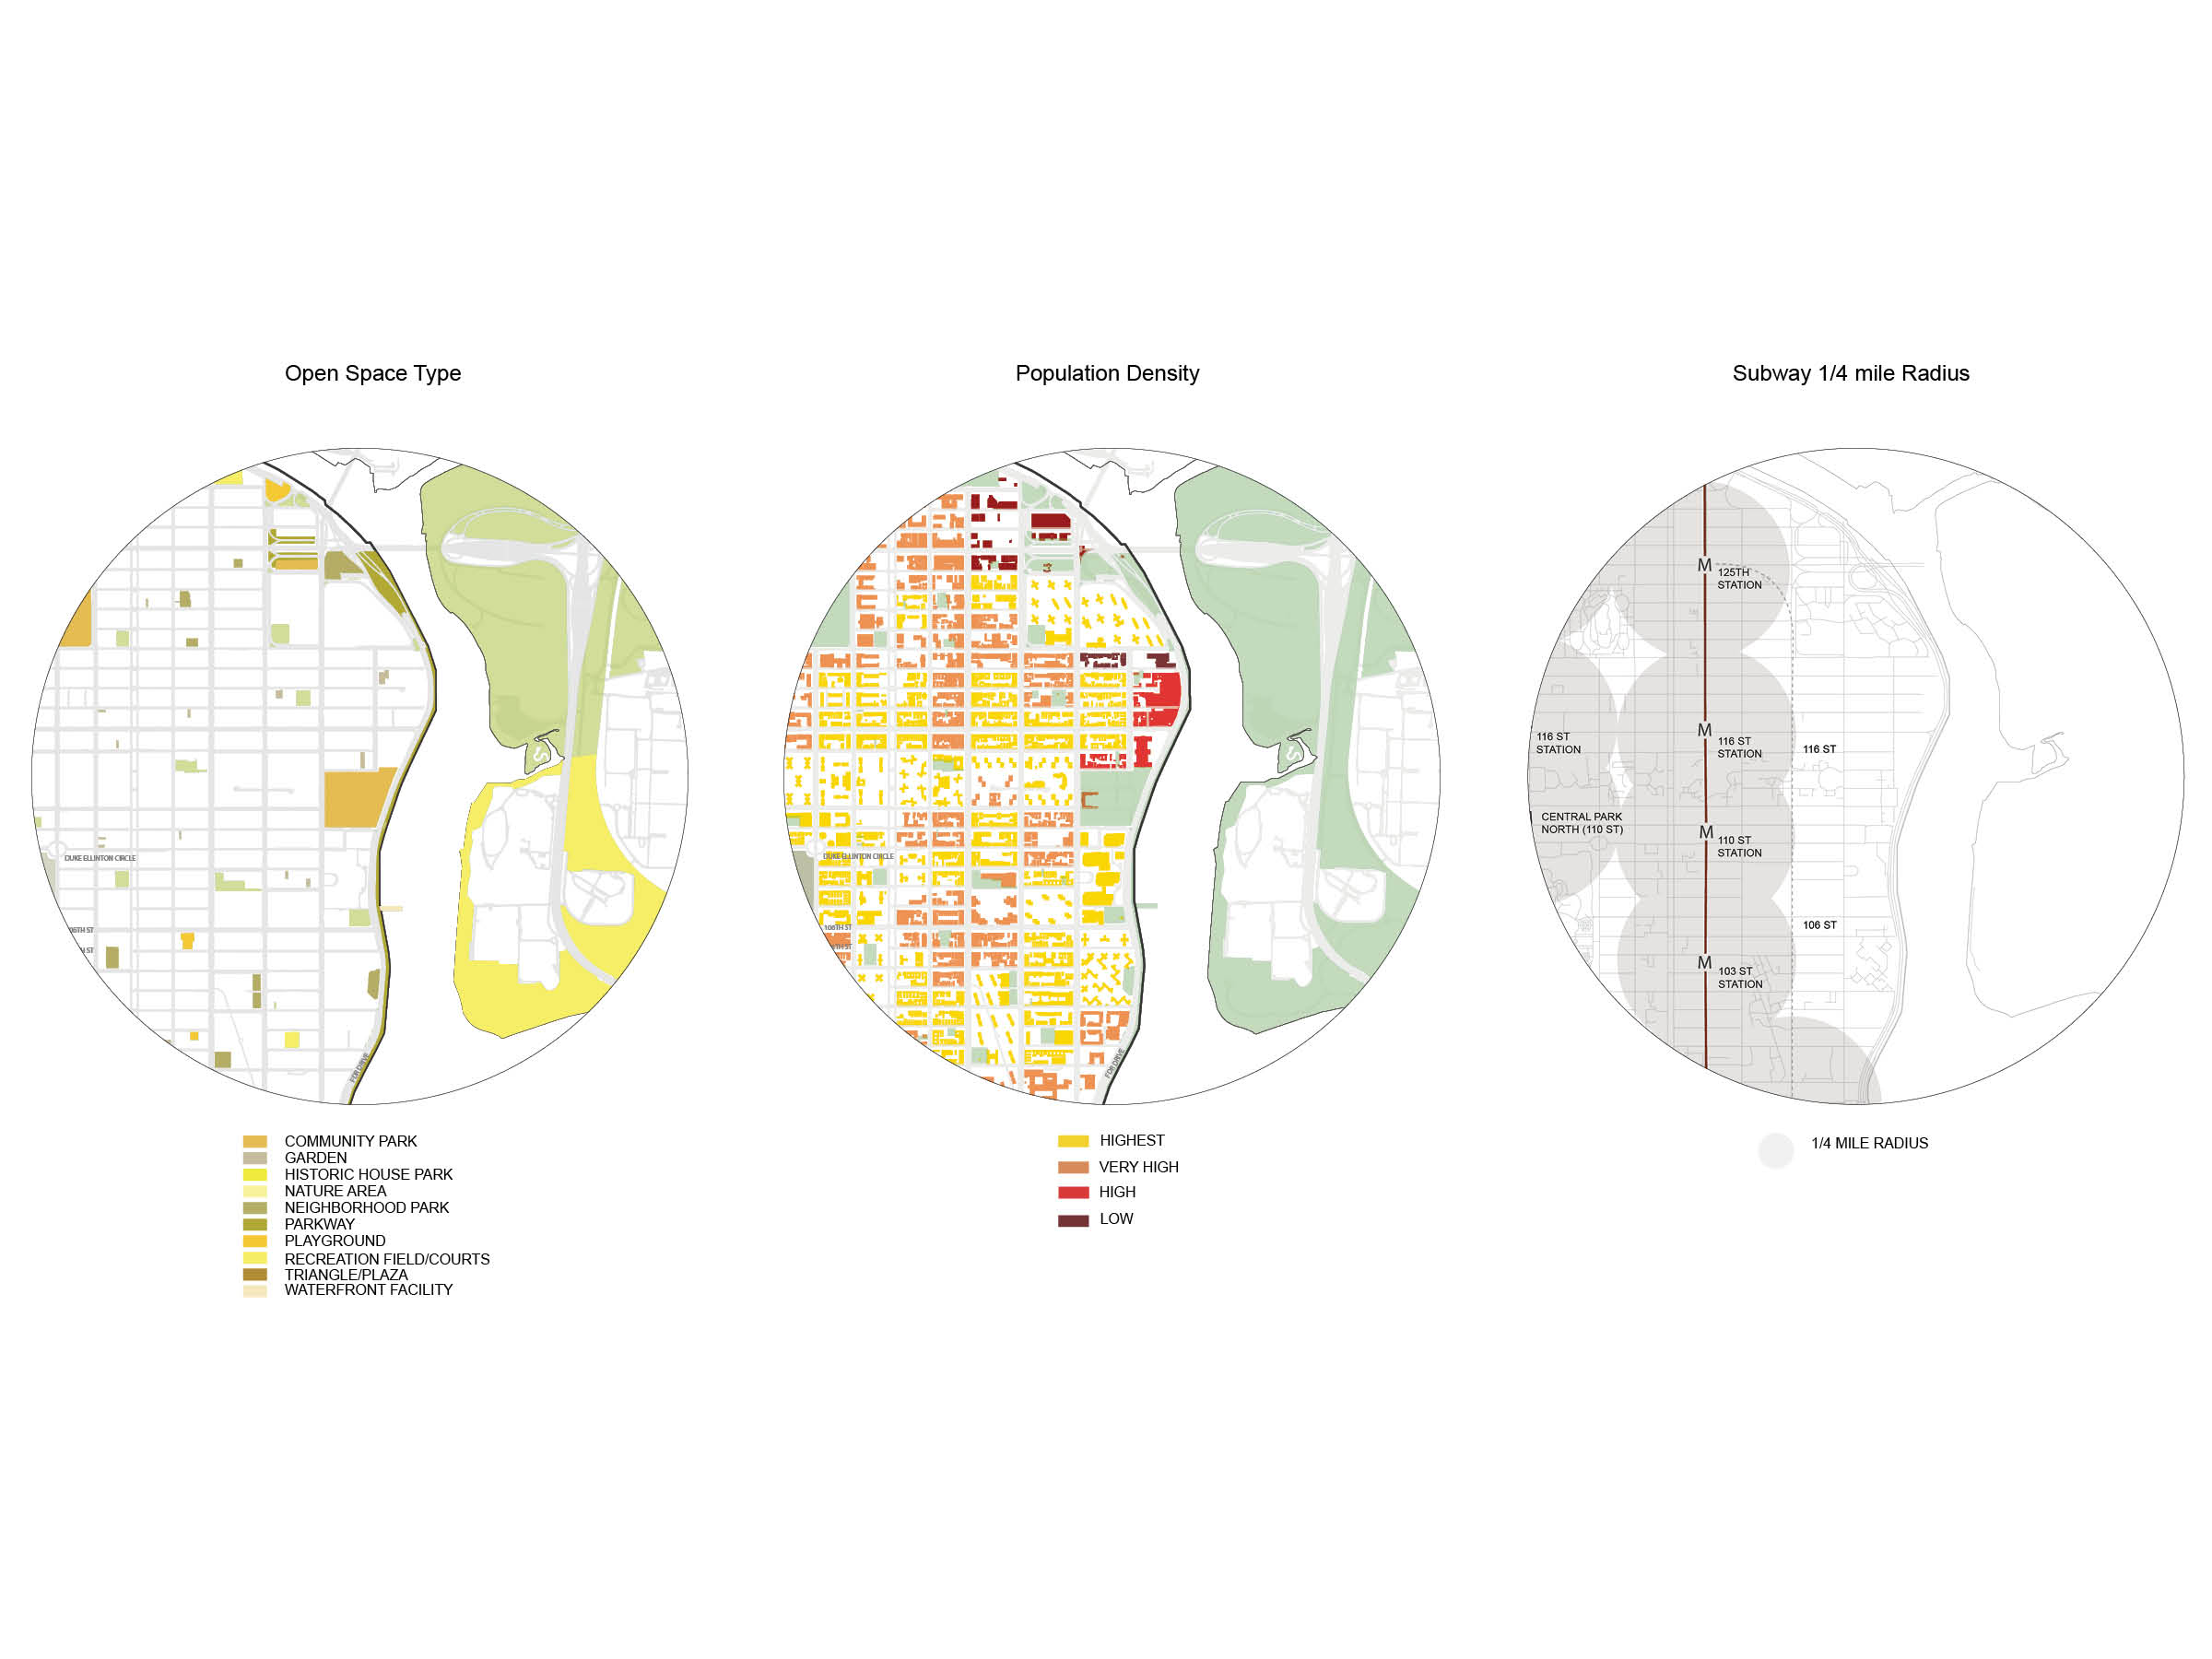 Source: NYC open data